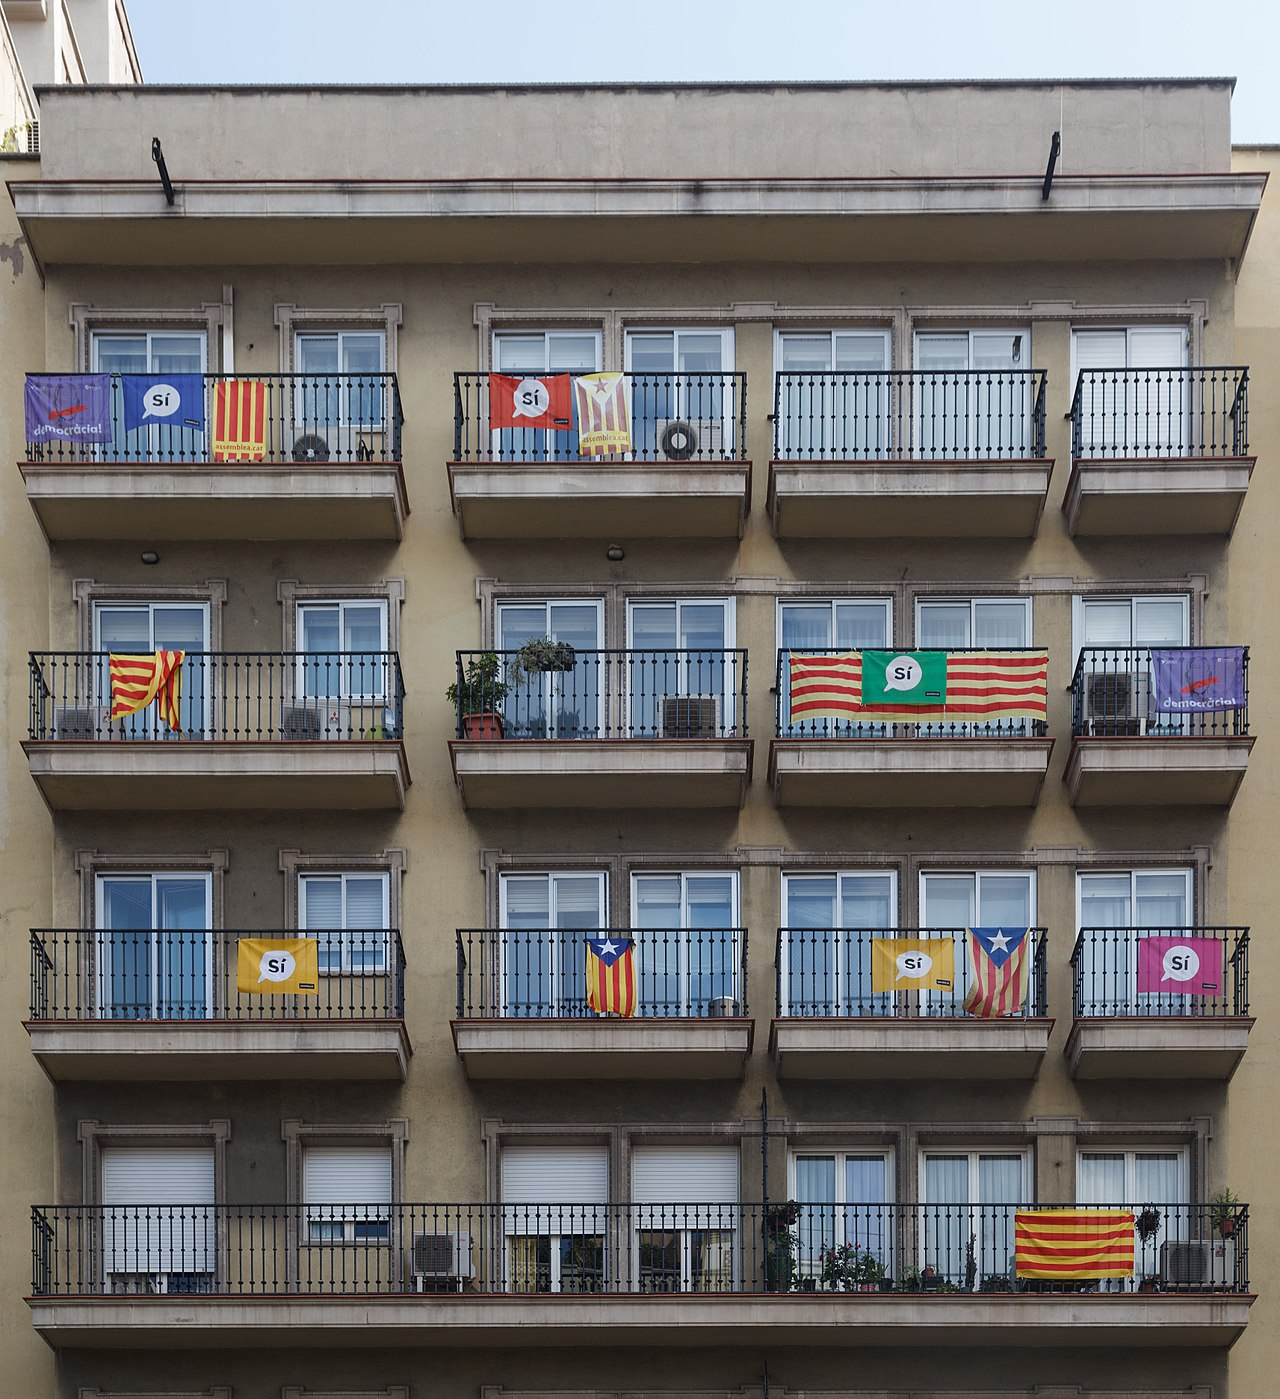 Different versions of the Senyera displayed in Barcelona during the 2017 independence referendum campaign